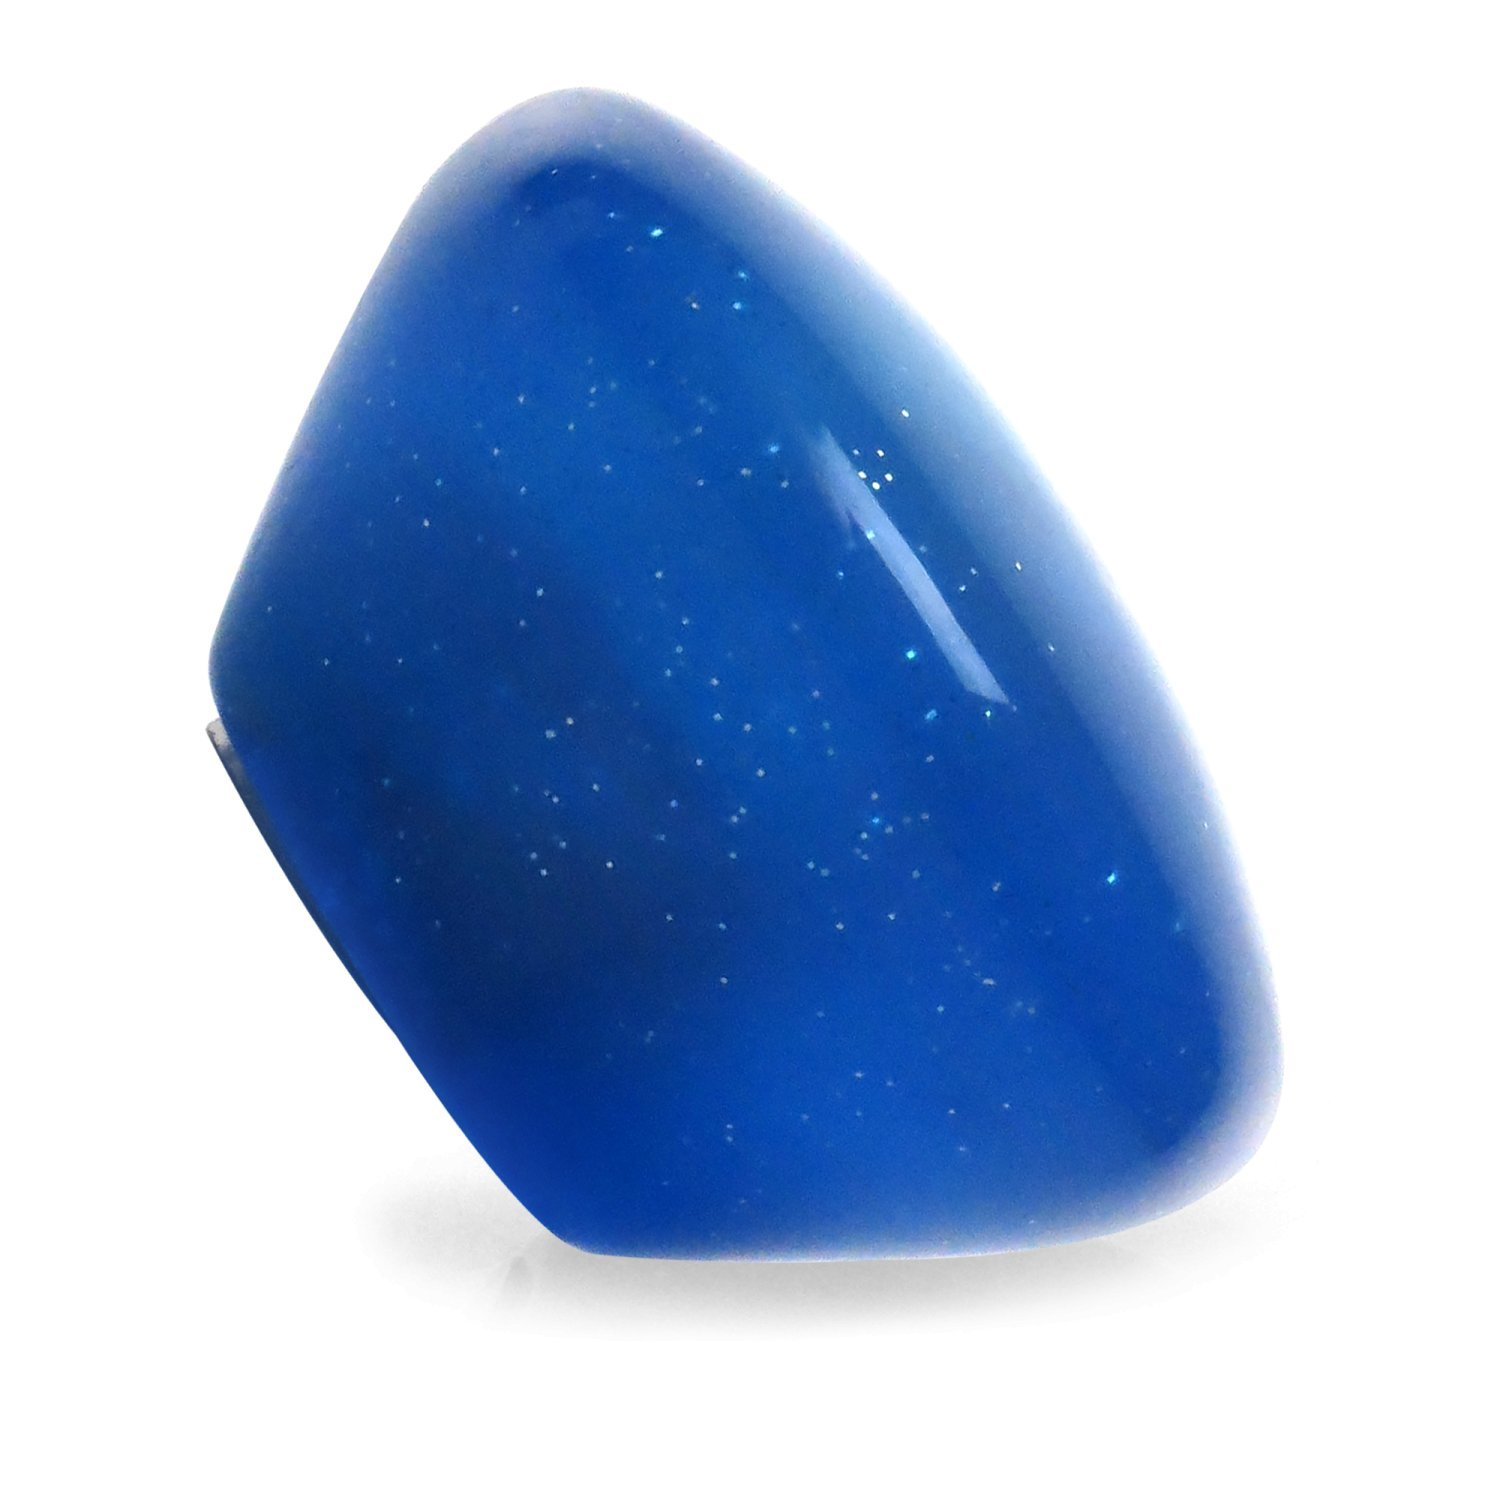 American Shifter 15676 Retro Series Blue Suicide Brody Knob Translucent with Metal Flake